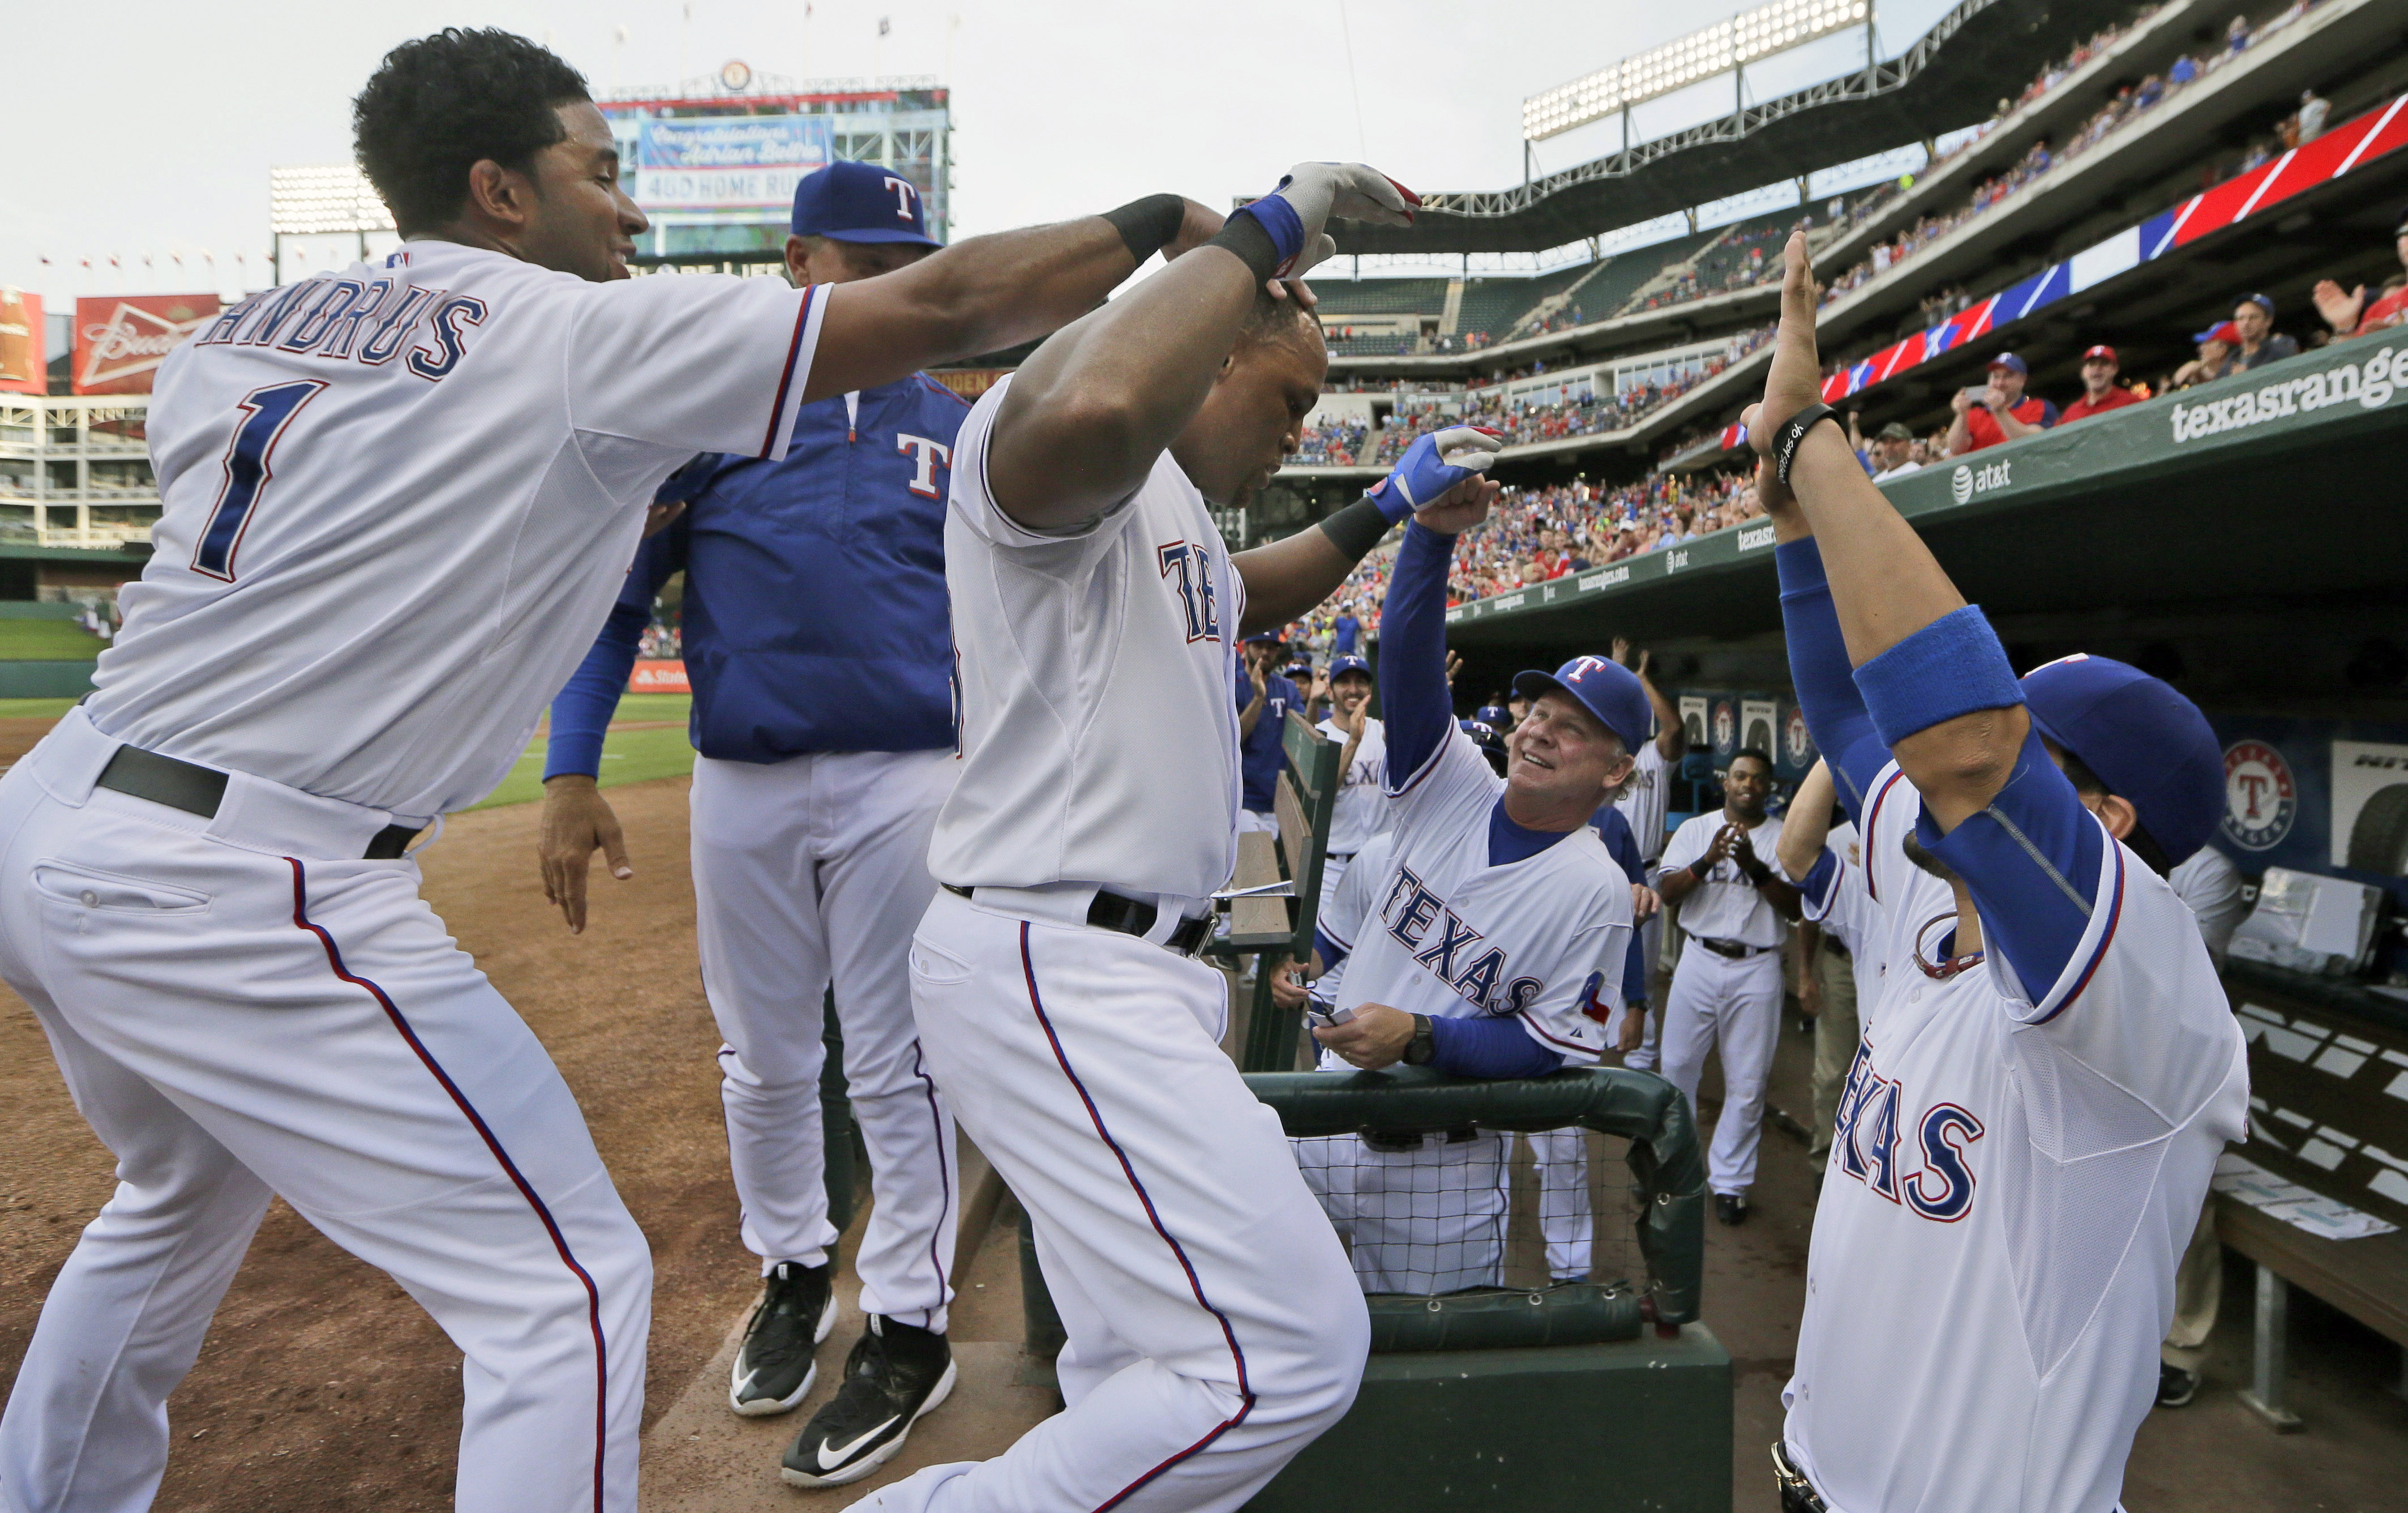 Texas Rangers Adrian Beltre, center left, celebrates his solo home run Elvis Andrus (1), Robinson Chirinos, right, and bench coach Steve Buechele during the first inning of a baseball game against the Cleveland Indians in Arlington, Texas, Friday, May 15,